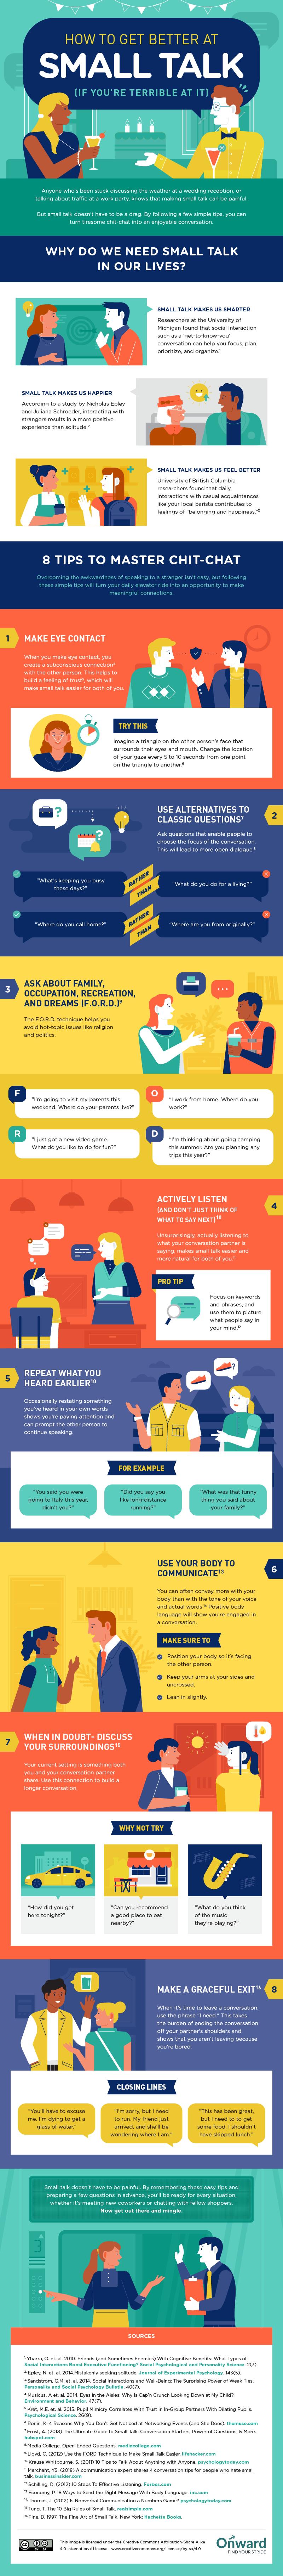 Small Talk is Good for Your Brain: How to Build and Master Small Talk Skills - Infographic